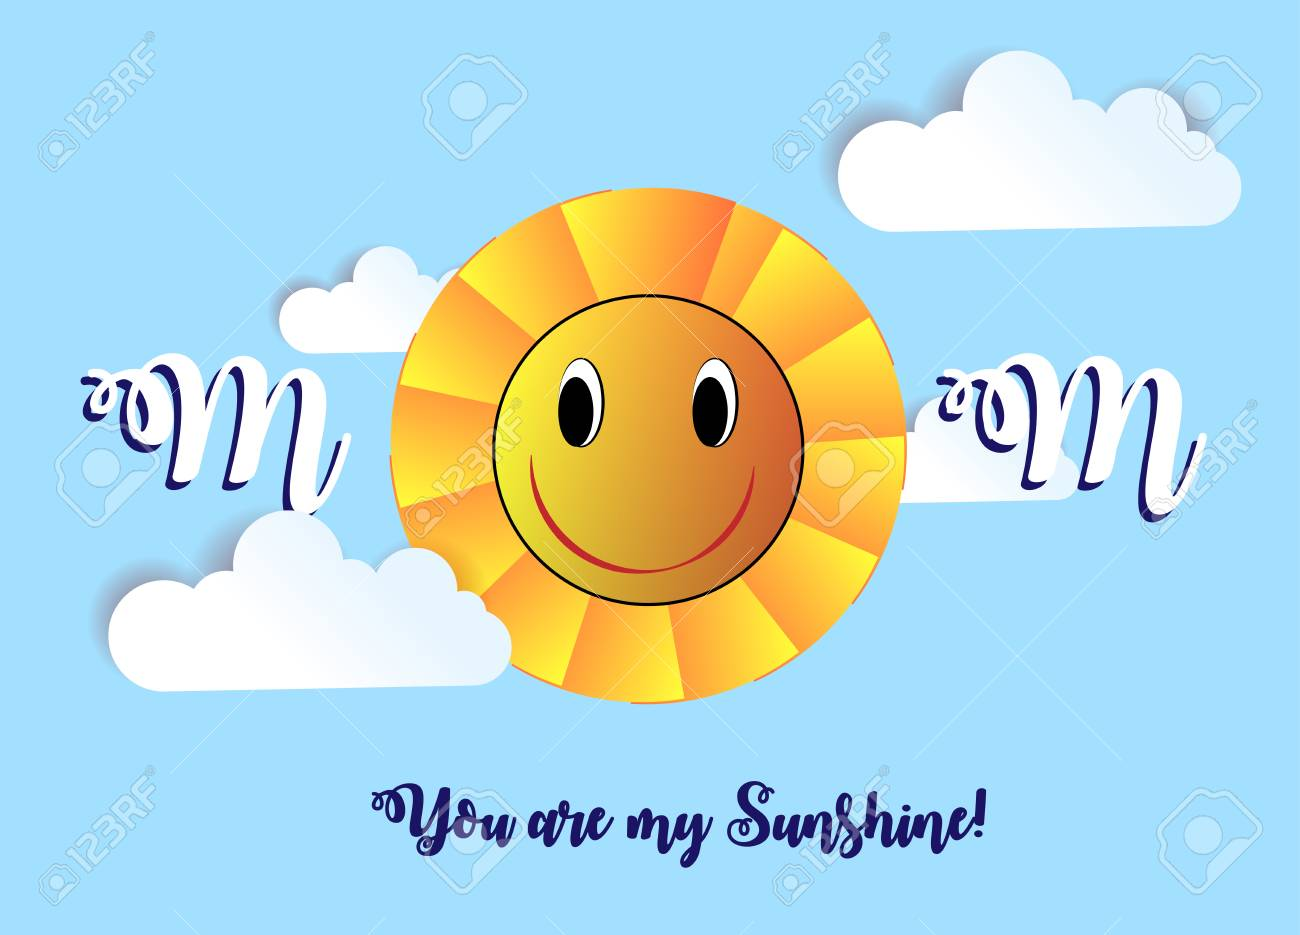 Concept Of Creative Design Of A Greeting Card With A Smiling